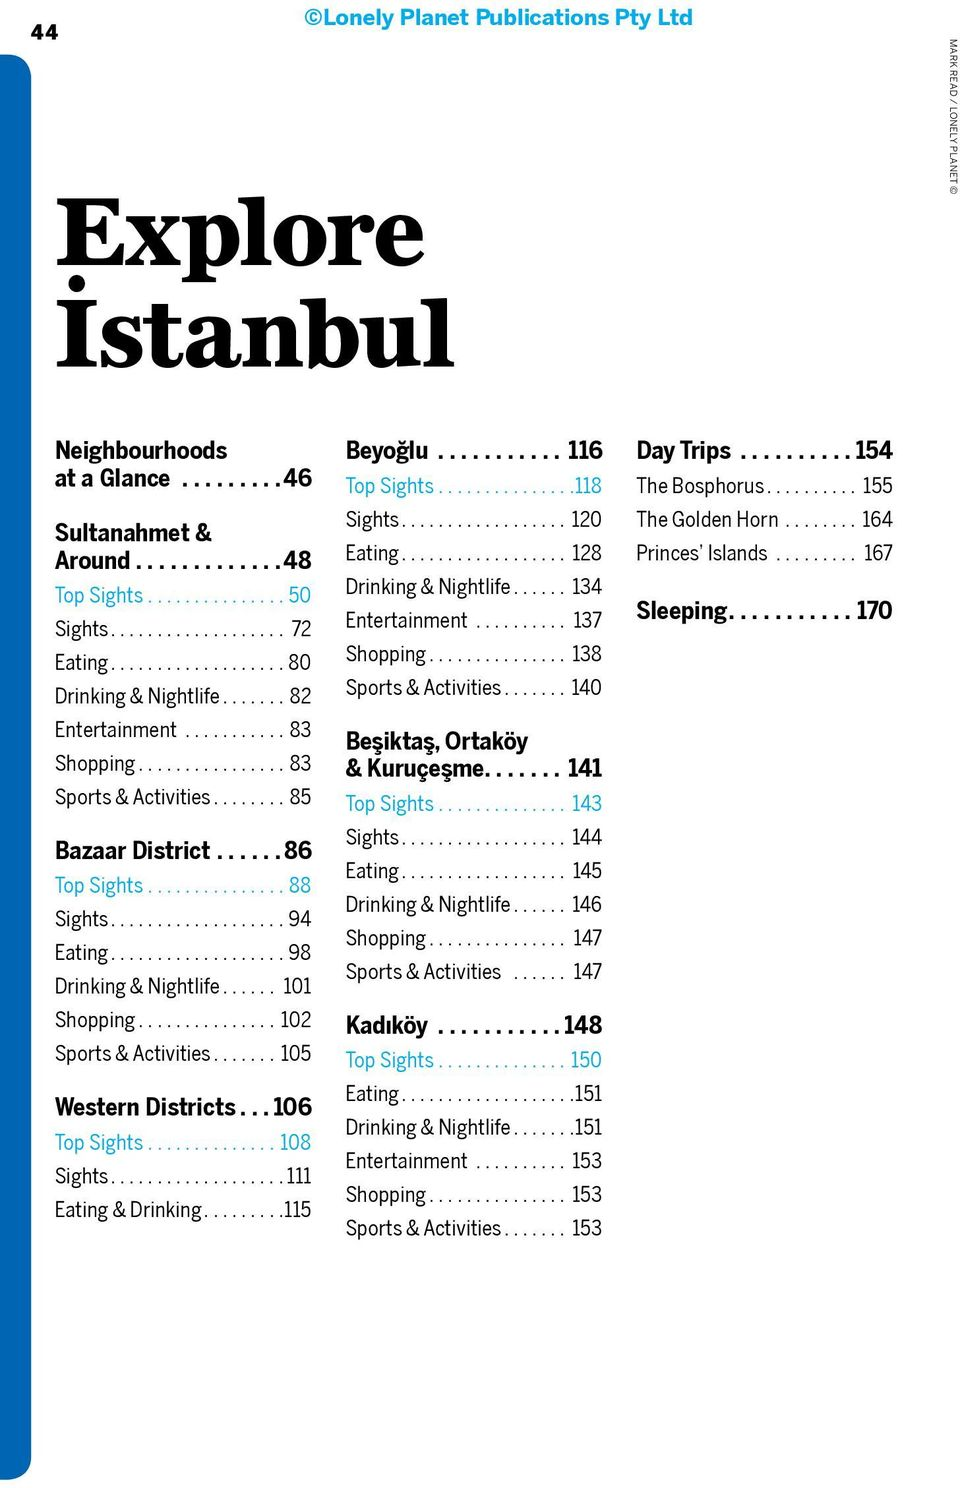 .. 06 Top Sights...08 Sights... Eating & rinking... 5 eyoğlu... 6 Top Sights... 8 Sights...0 Eating... 8 rinking & Nightlife... Entertainment... 7 Shopping... 8 Sports & ctivities.